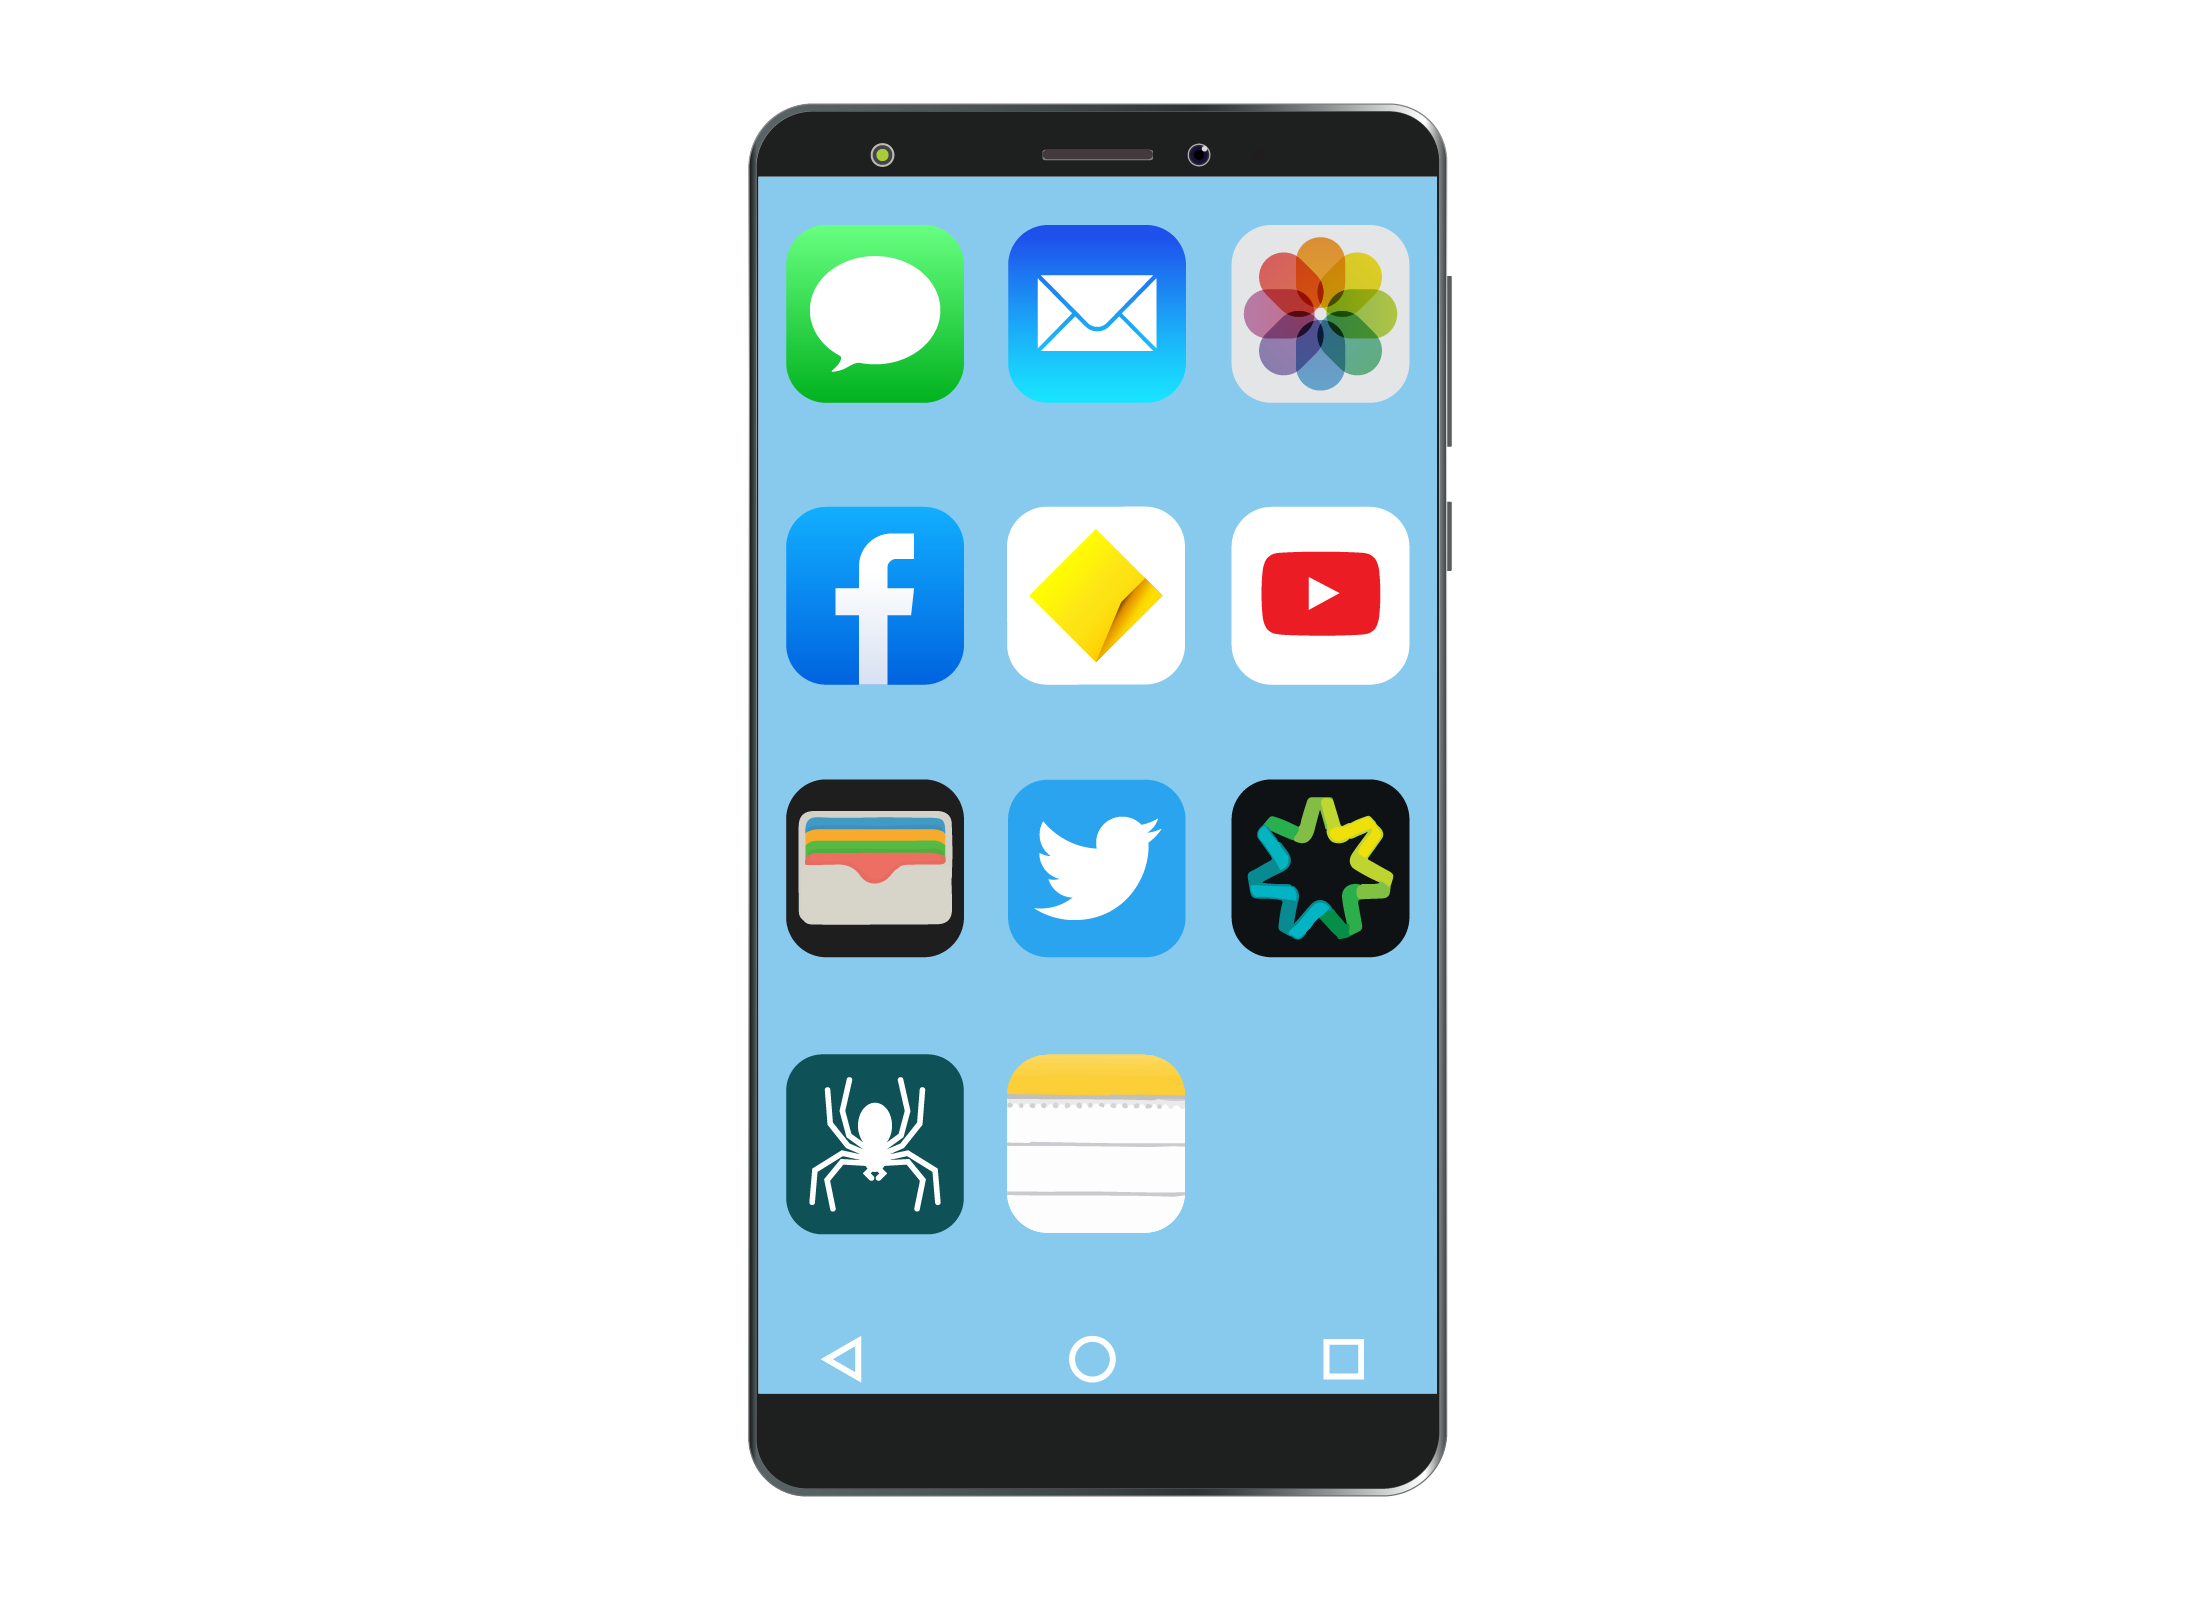 A typical smartphone screen with a number of different apps on display